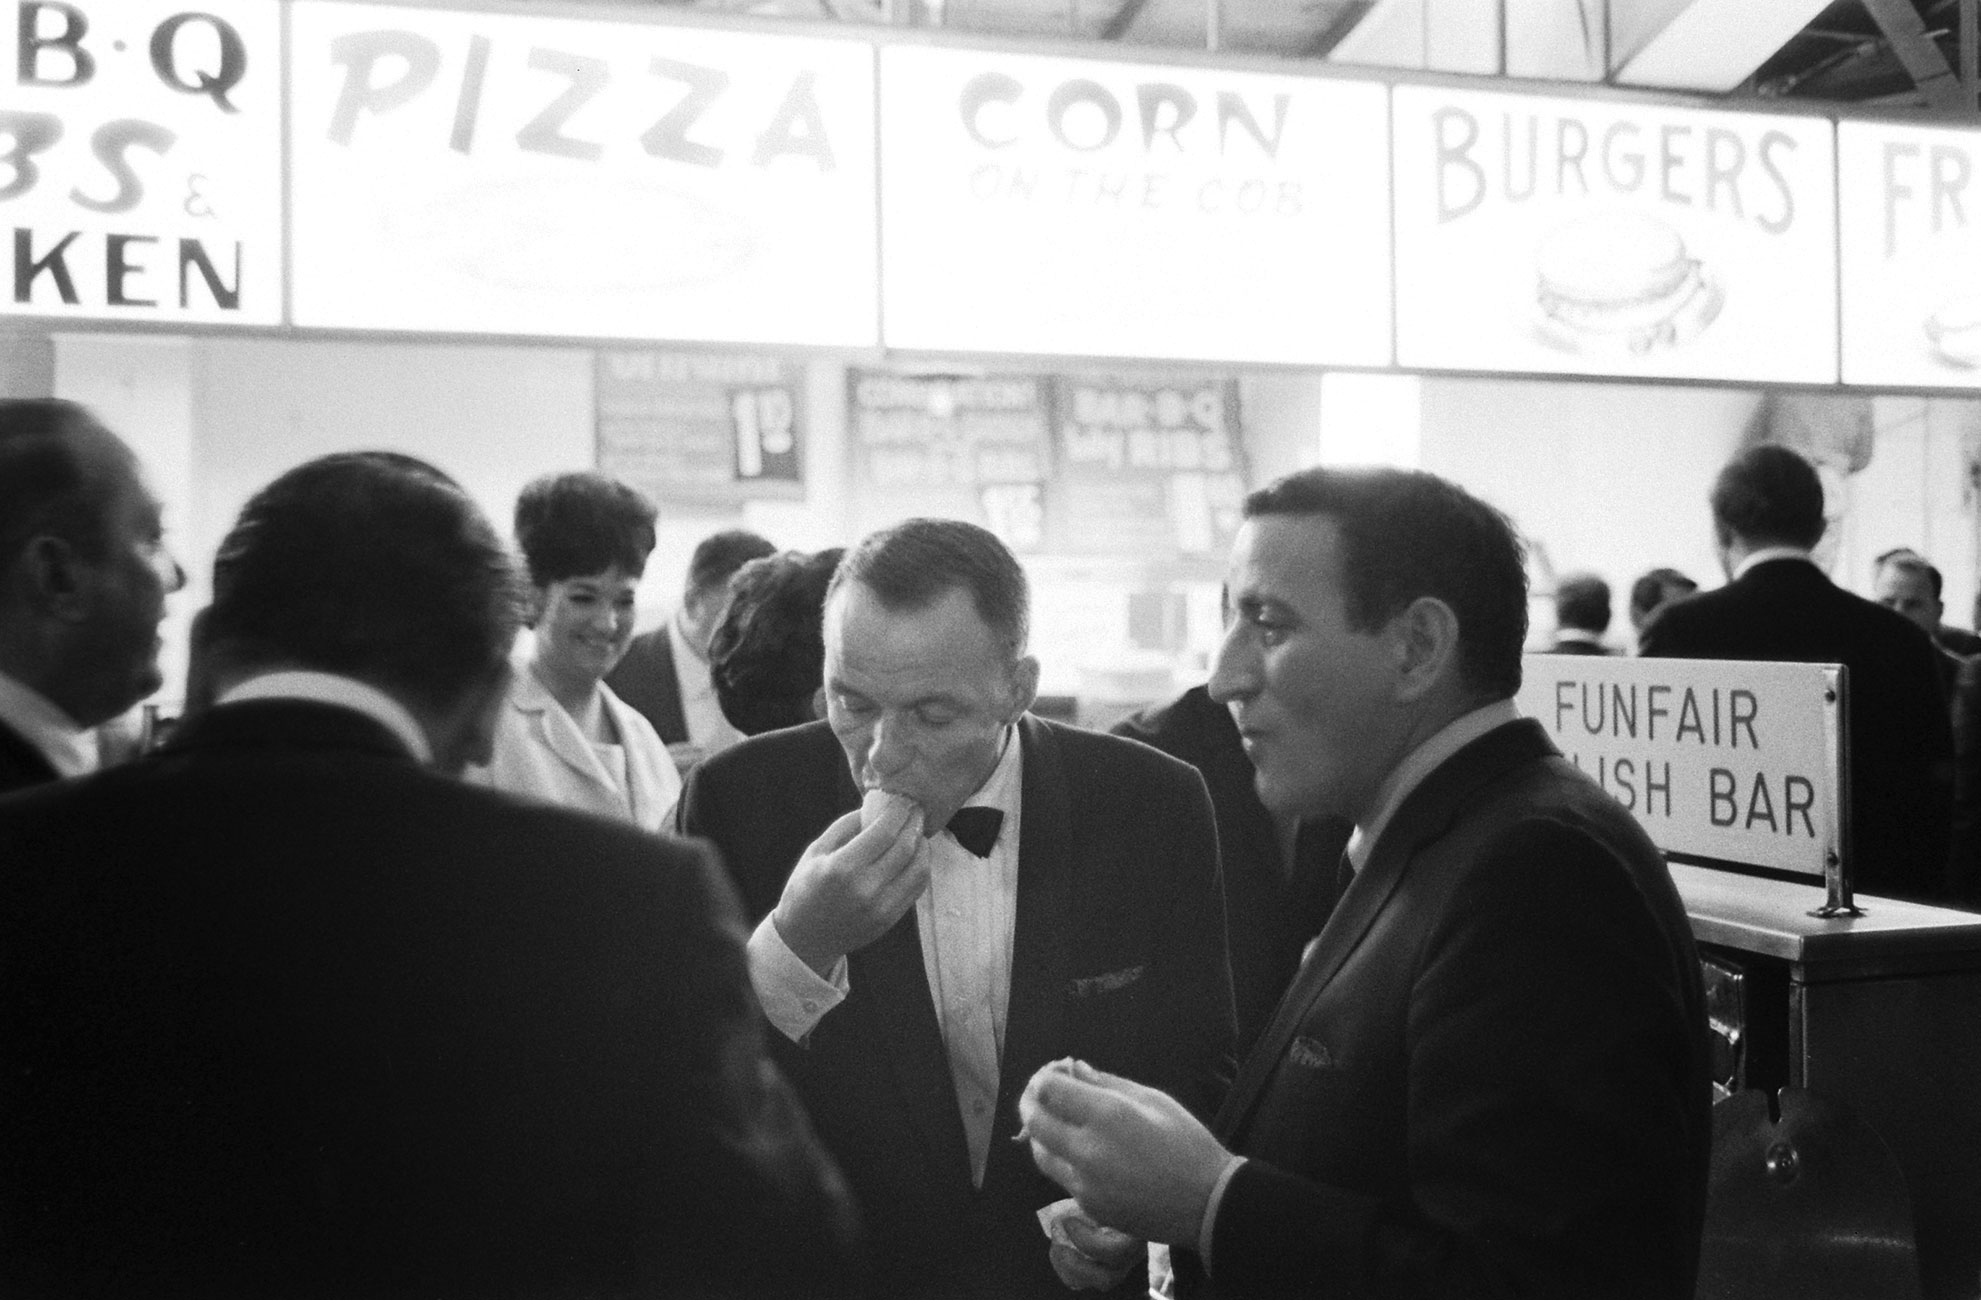 Tony Bennett, Frank Sinatra and friends eat some late-night hot dogs, Miami, 1965.